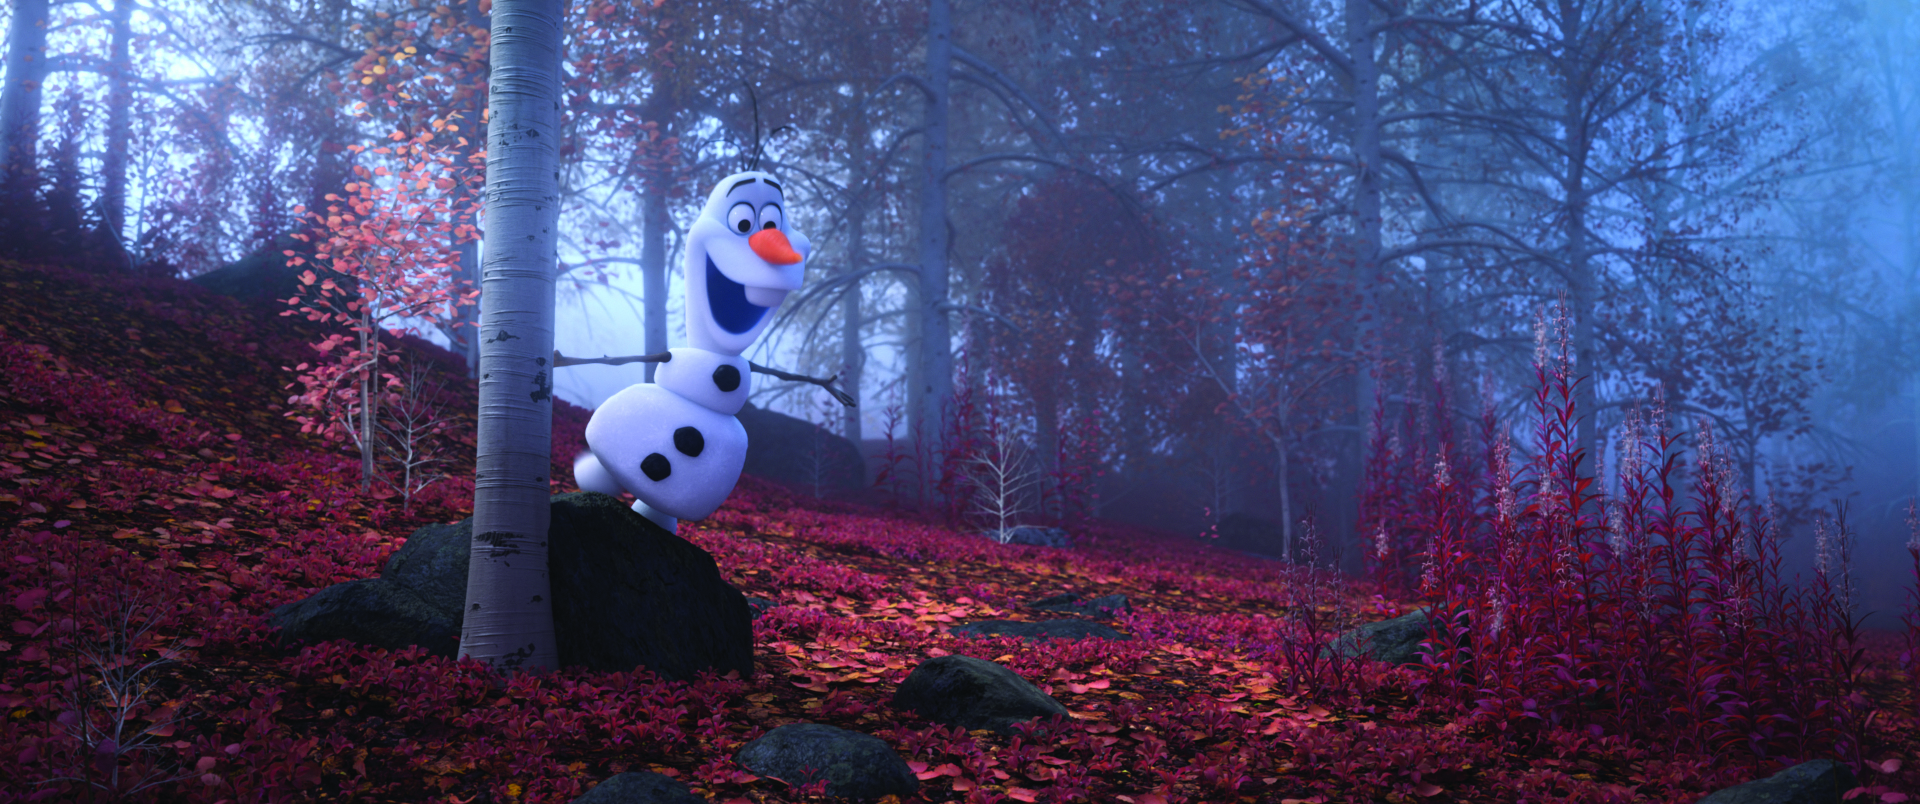 "WHEN I AM OLDER – When Elsa, Anna, Kristoff and Olaf find themselves in the enchanted forest in ""Frozen 2,"" Olaf faces a series of inexplicable events, illustrated in the song ""When I Am Older."" Despite the mystery and dangerous realities coming to life before his eyes, the lovable snowman is convinced that one day, it'll all make sense. Featuring Josh Gad as the voice of Olaf, Walt Disney Animation Studios' ""Frozen 2"" opens in U.S. theaters on Nov. 22, 2019. © 2019 Disney. All Rights Reserved."